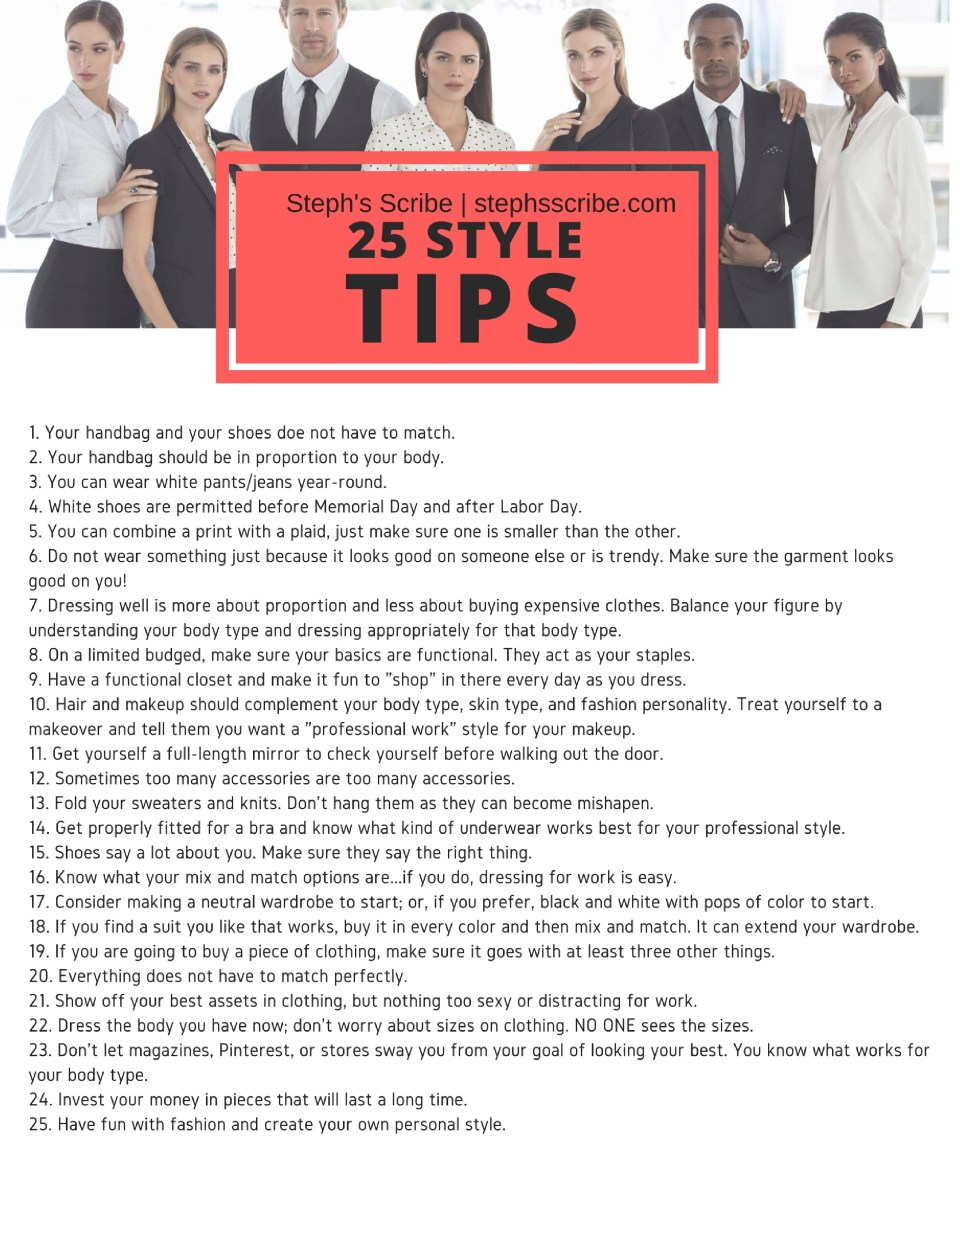 25 style tips(3)